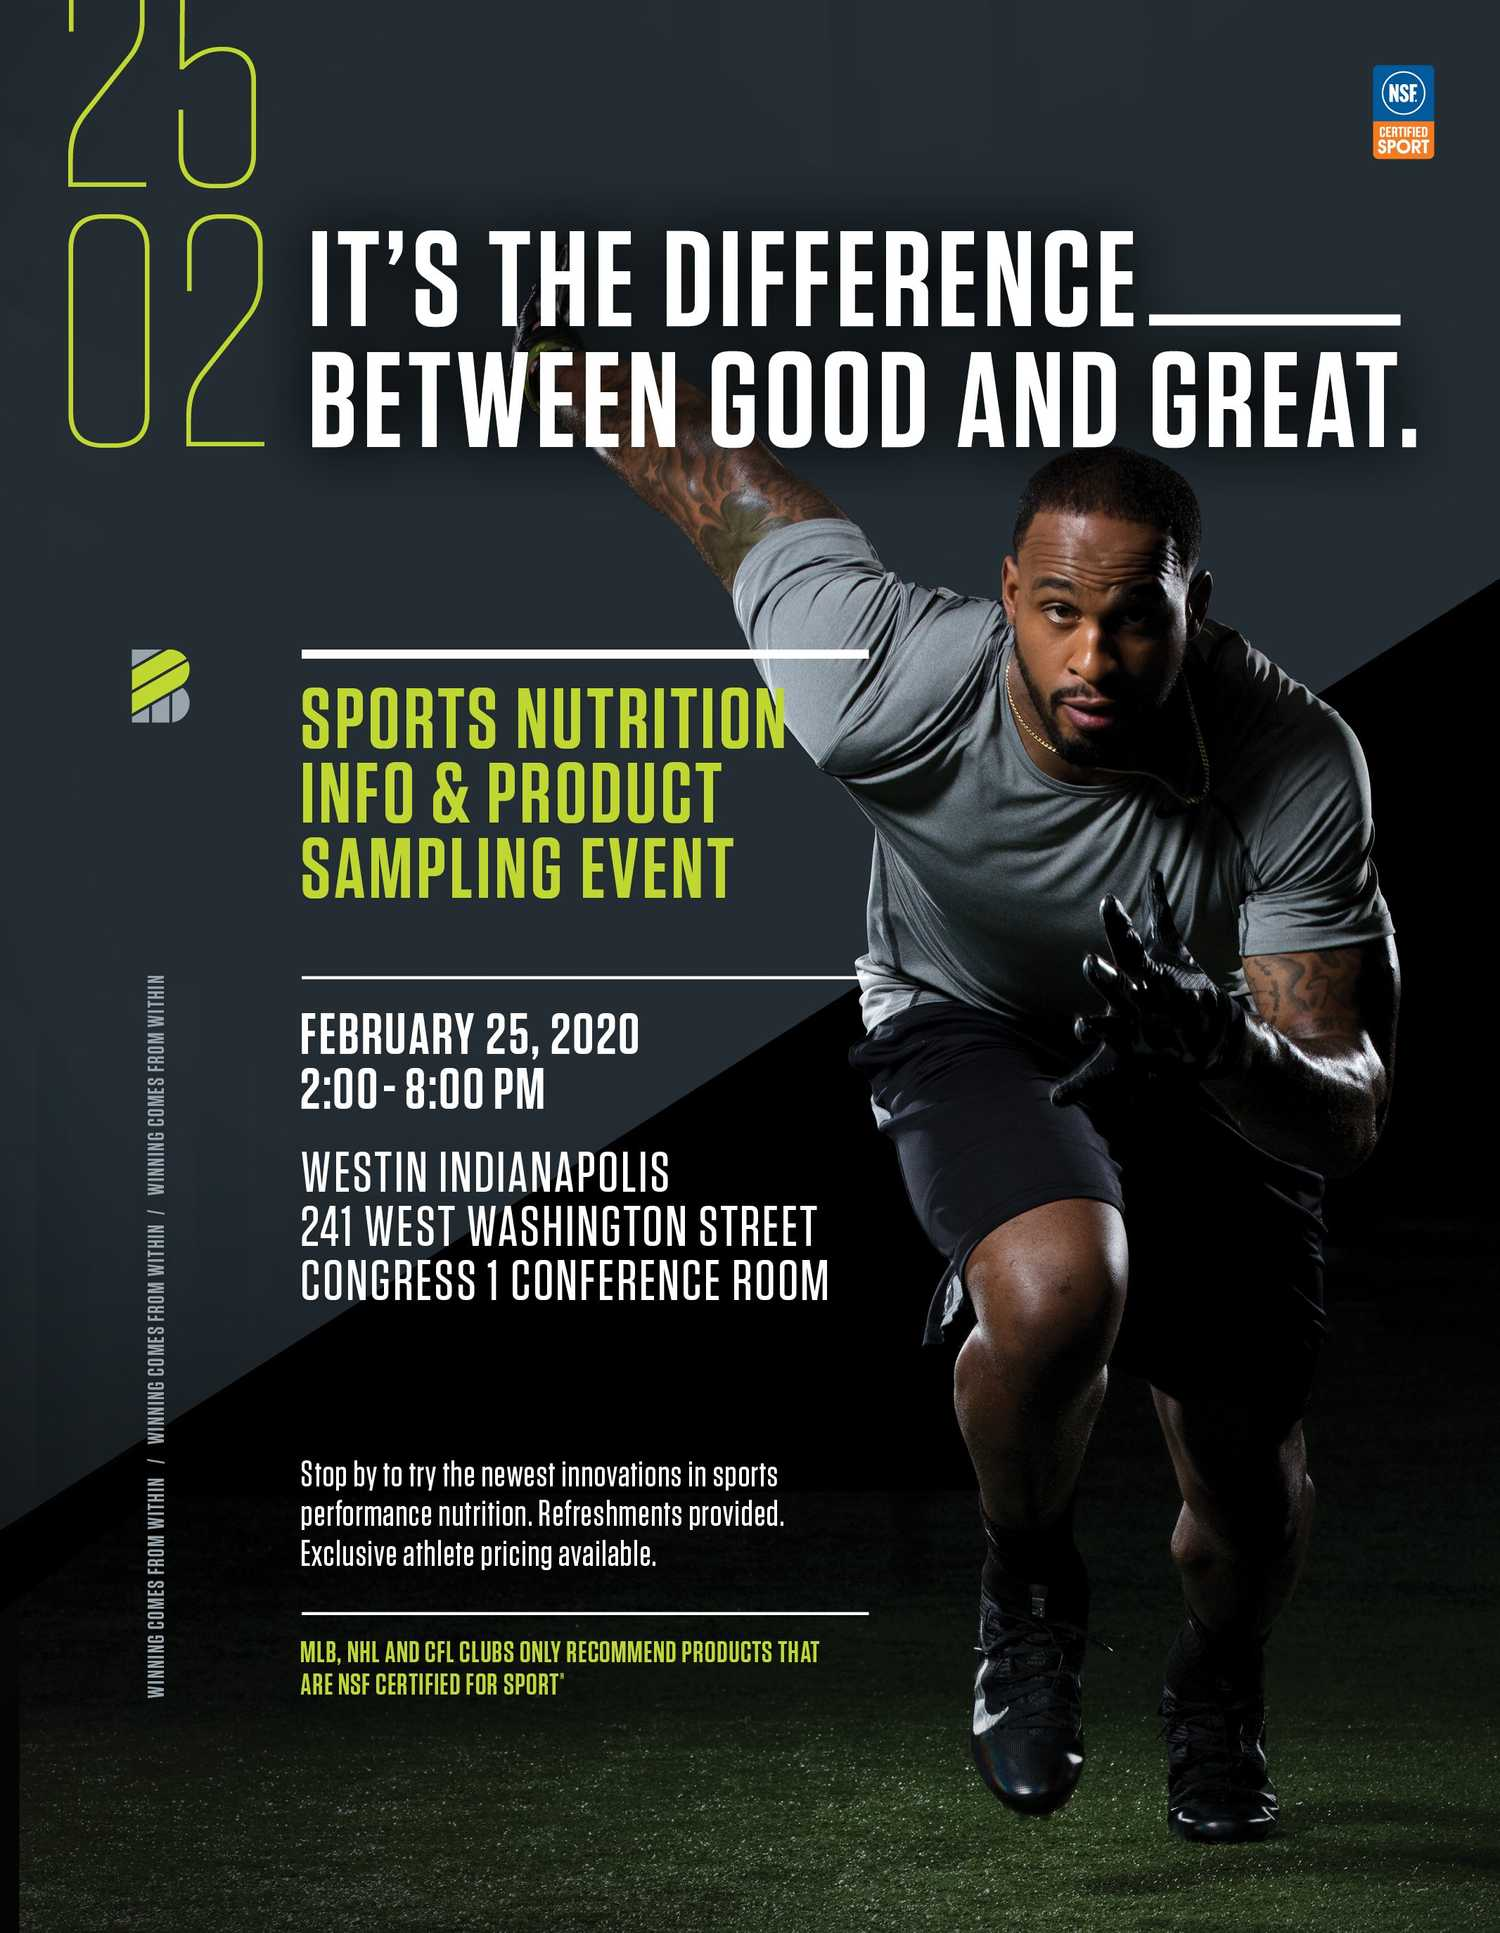 Event info for sports nutrition event